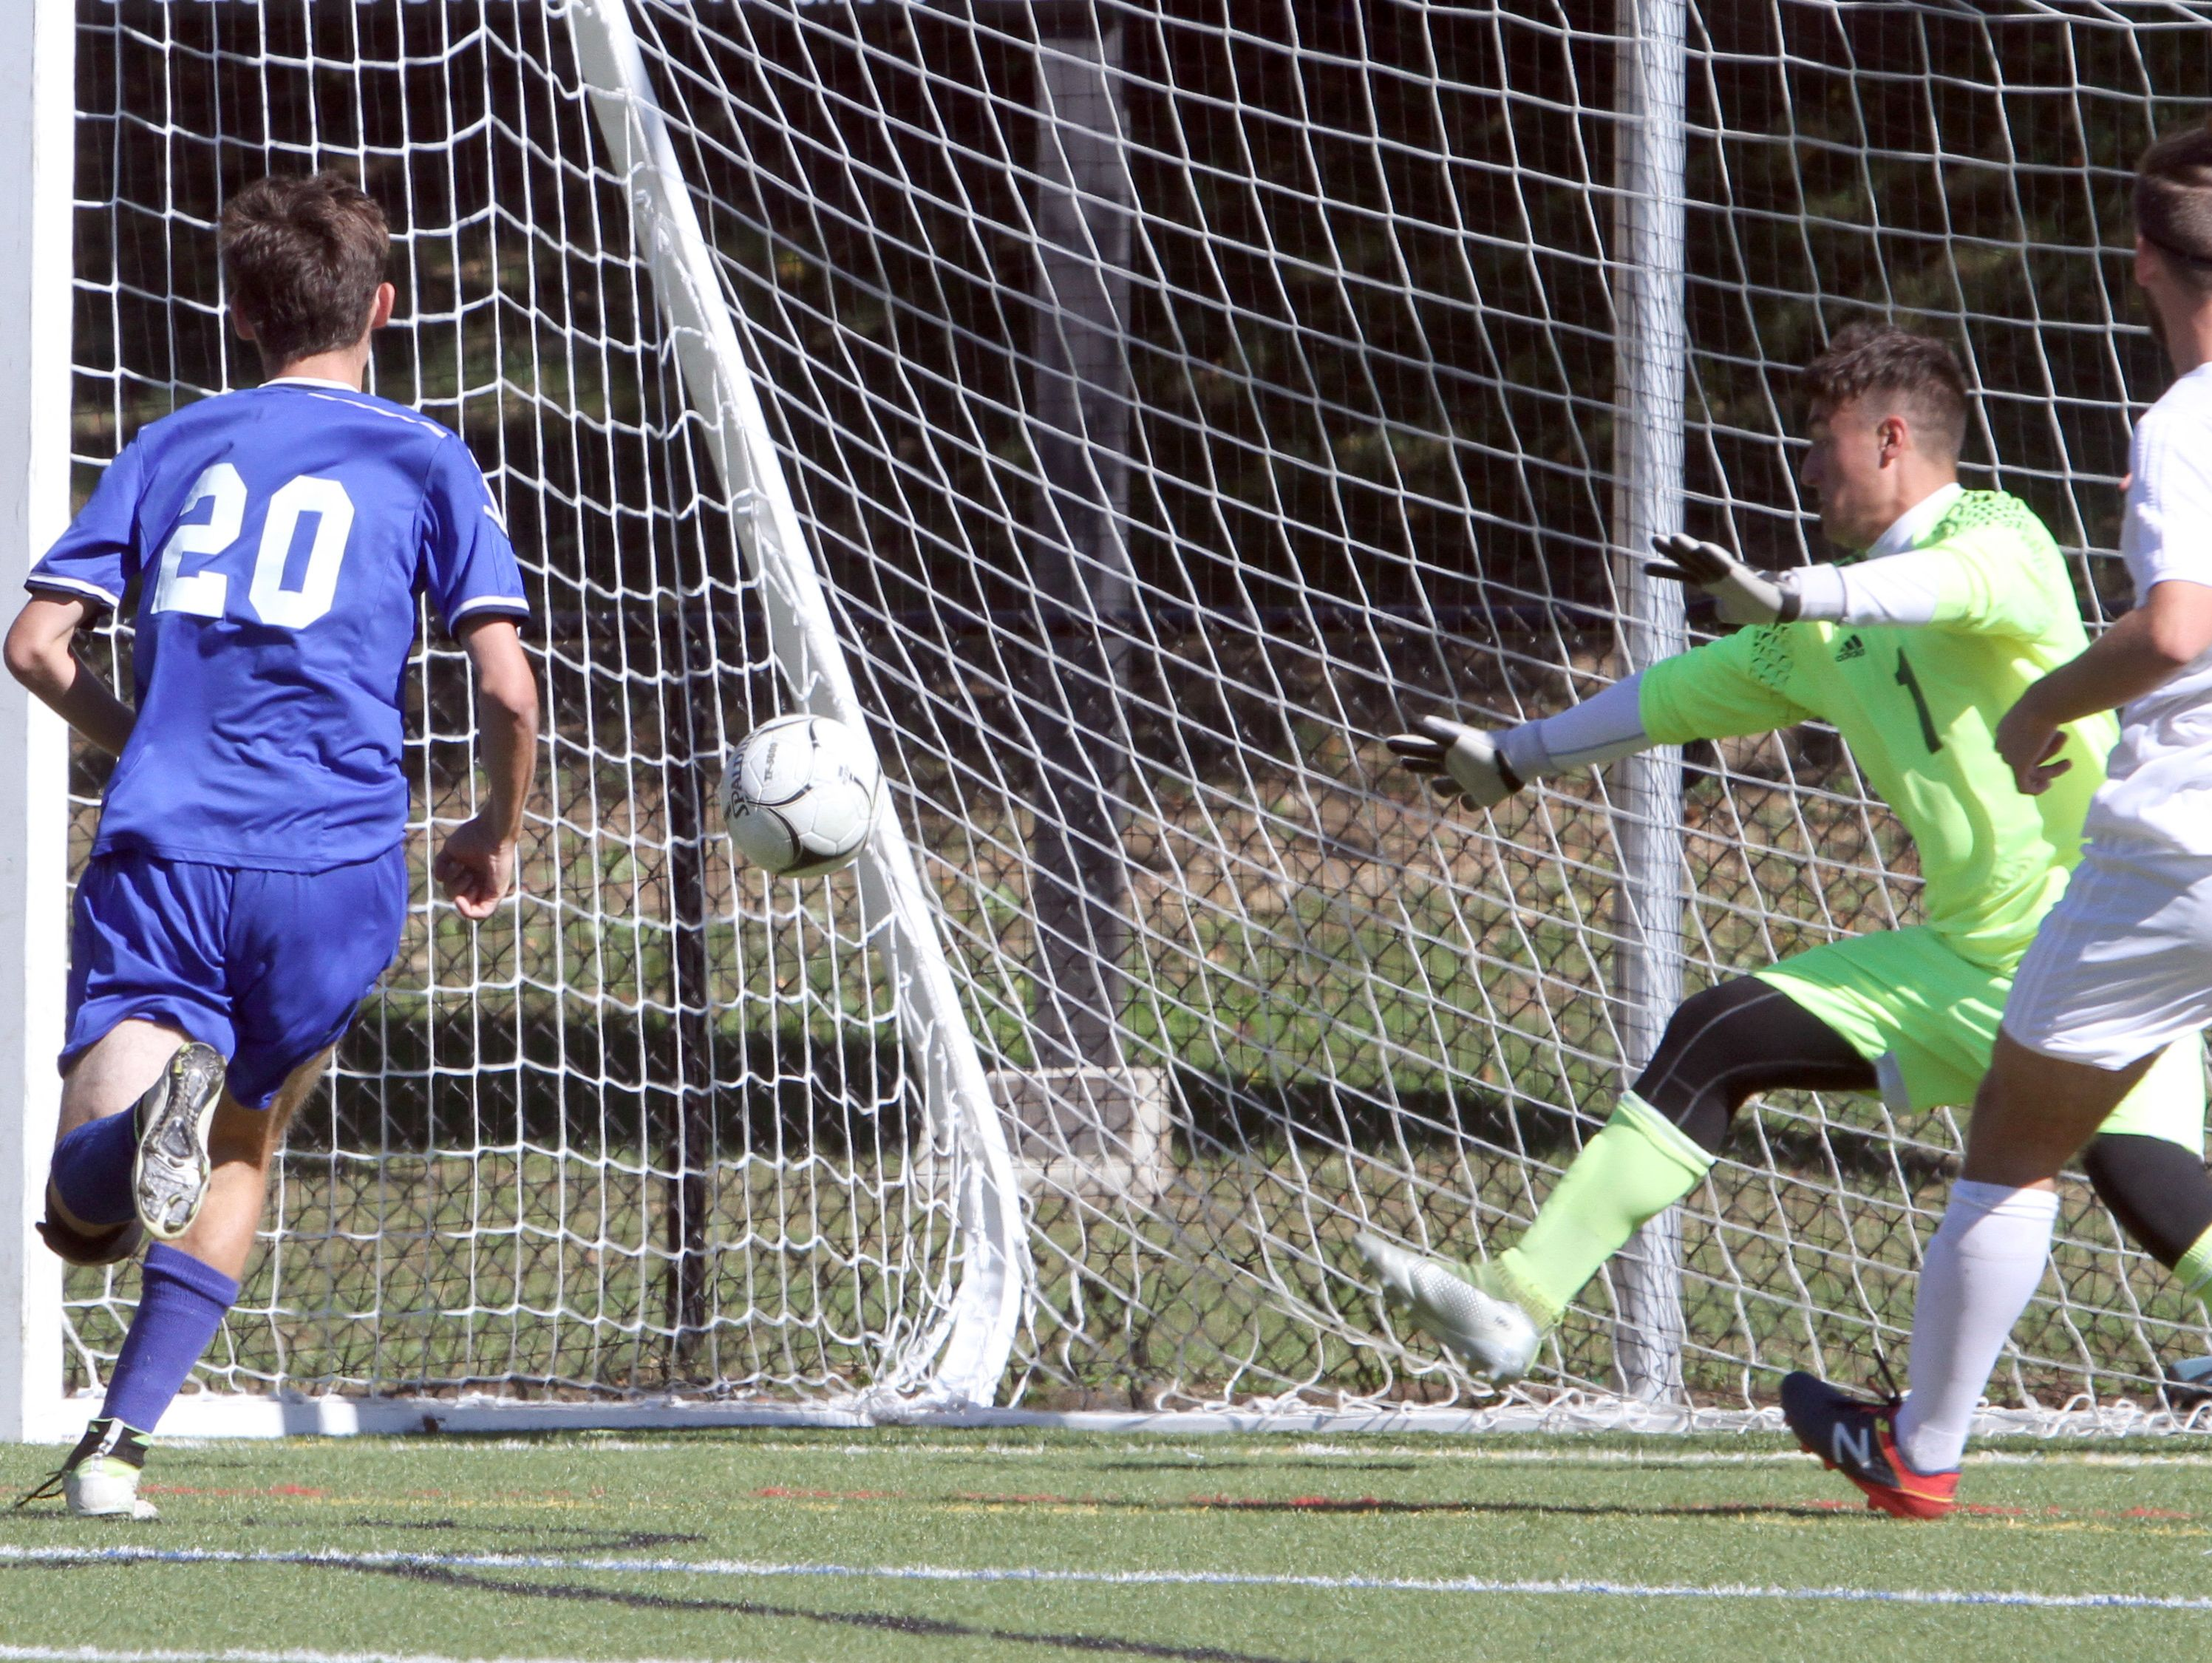 Goshen's Liam Kelly scores the winning goal on Valhalla goalkeeper Lorenzo Luciano in overtime during the Section 1 vs. Section 9 boys soccer challenge at Mamaroneck High School Oct. 10, 2016. Goshen defeated Valhalla 1-0.